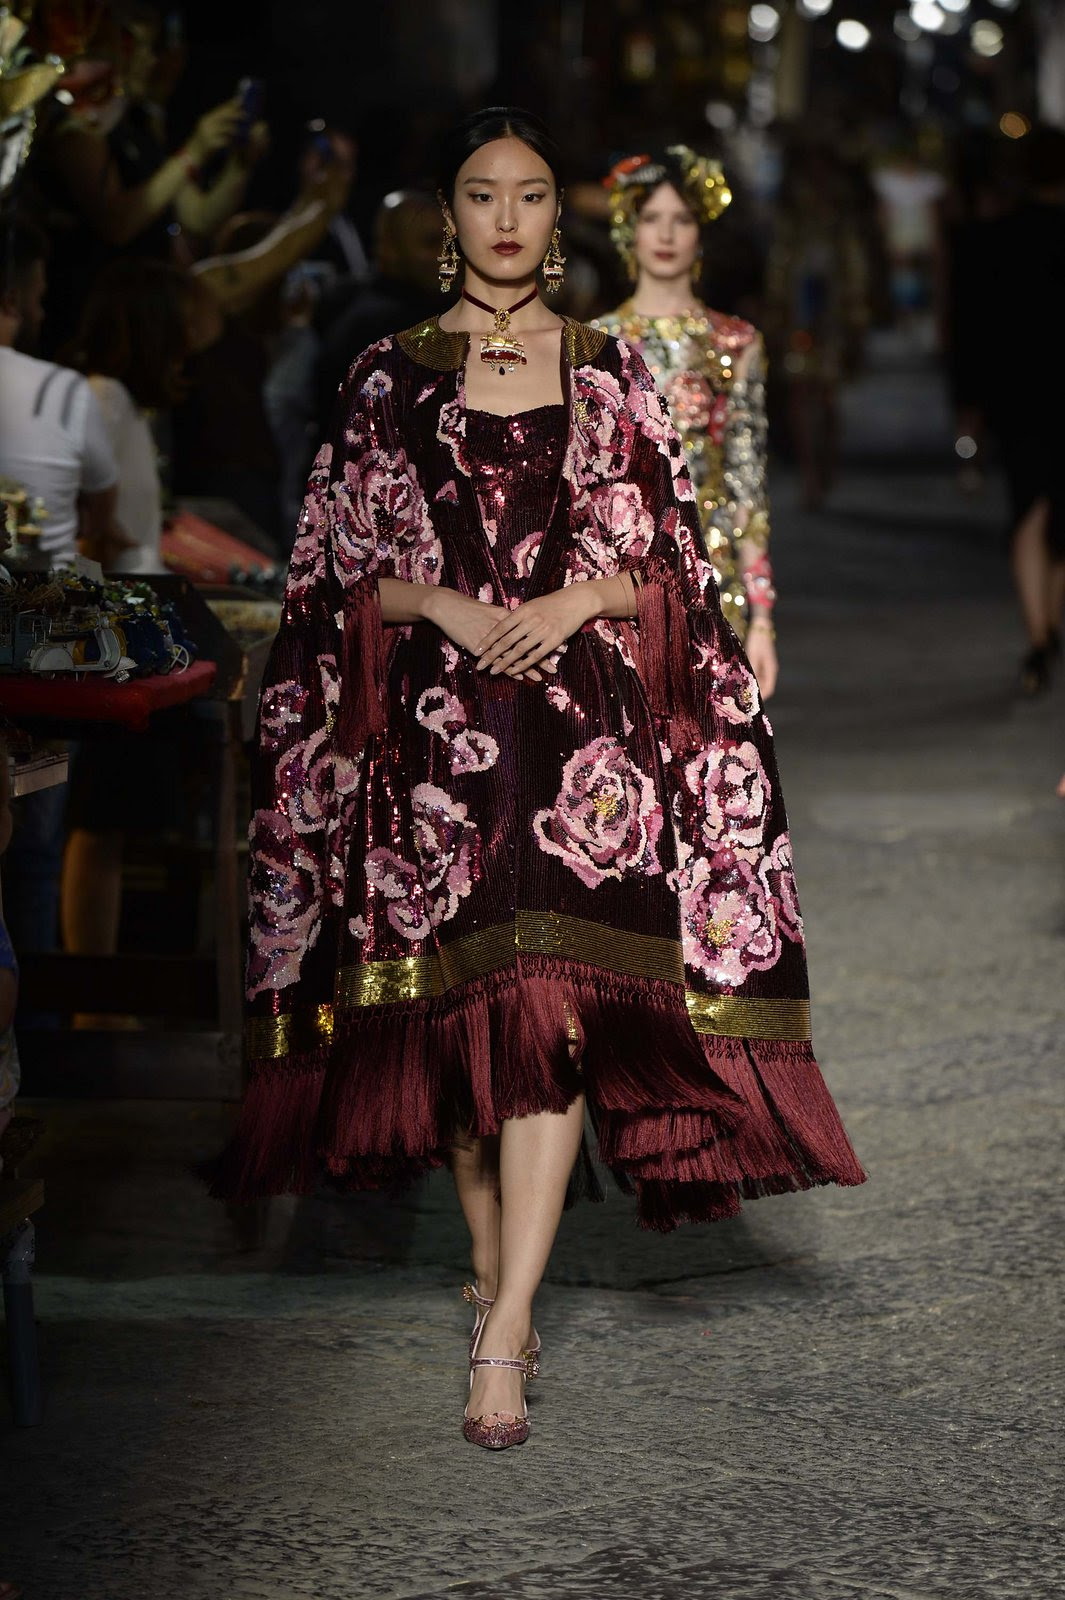 http://media.vogue.com/r/h_1600,w_1240/2016/07/09/19-dolce-and-gabbana-alta-moda-2016.jpg